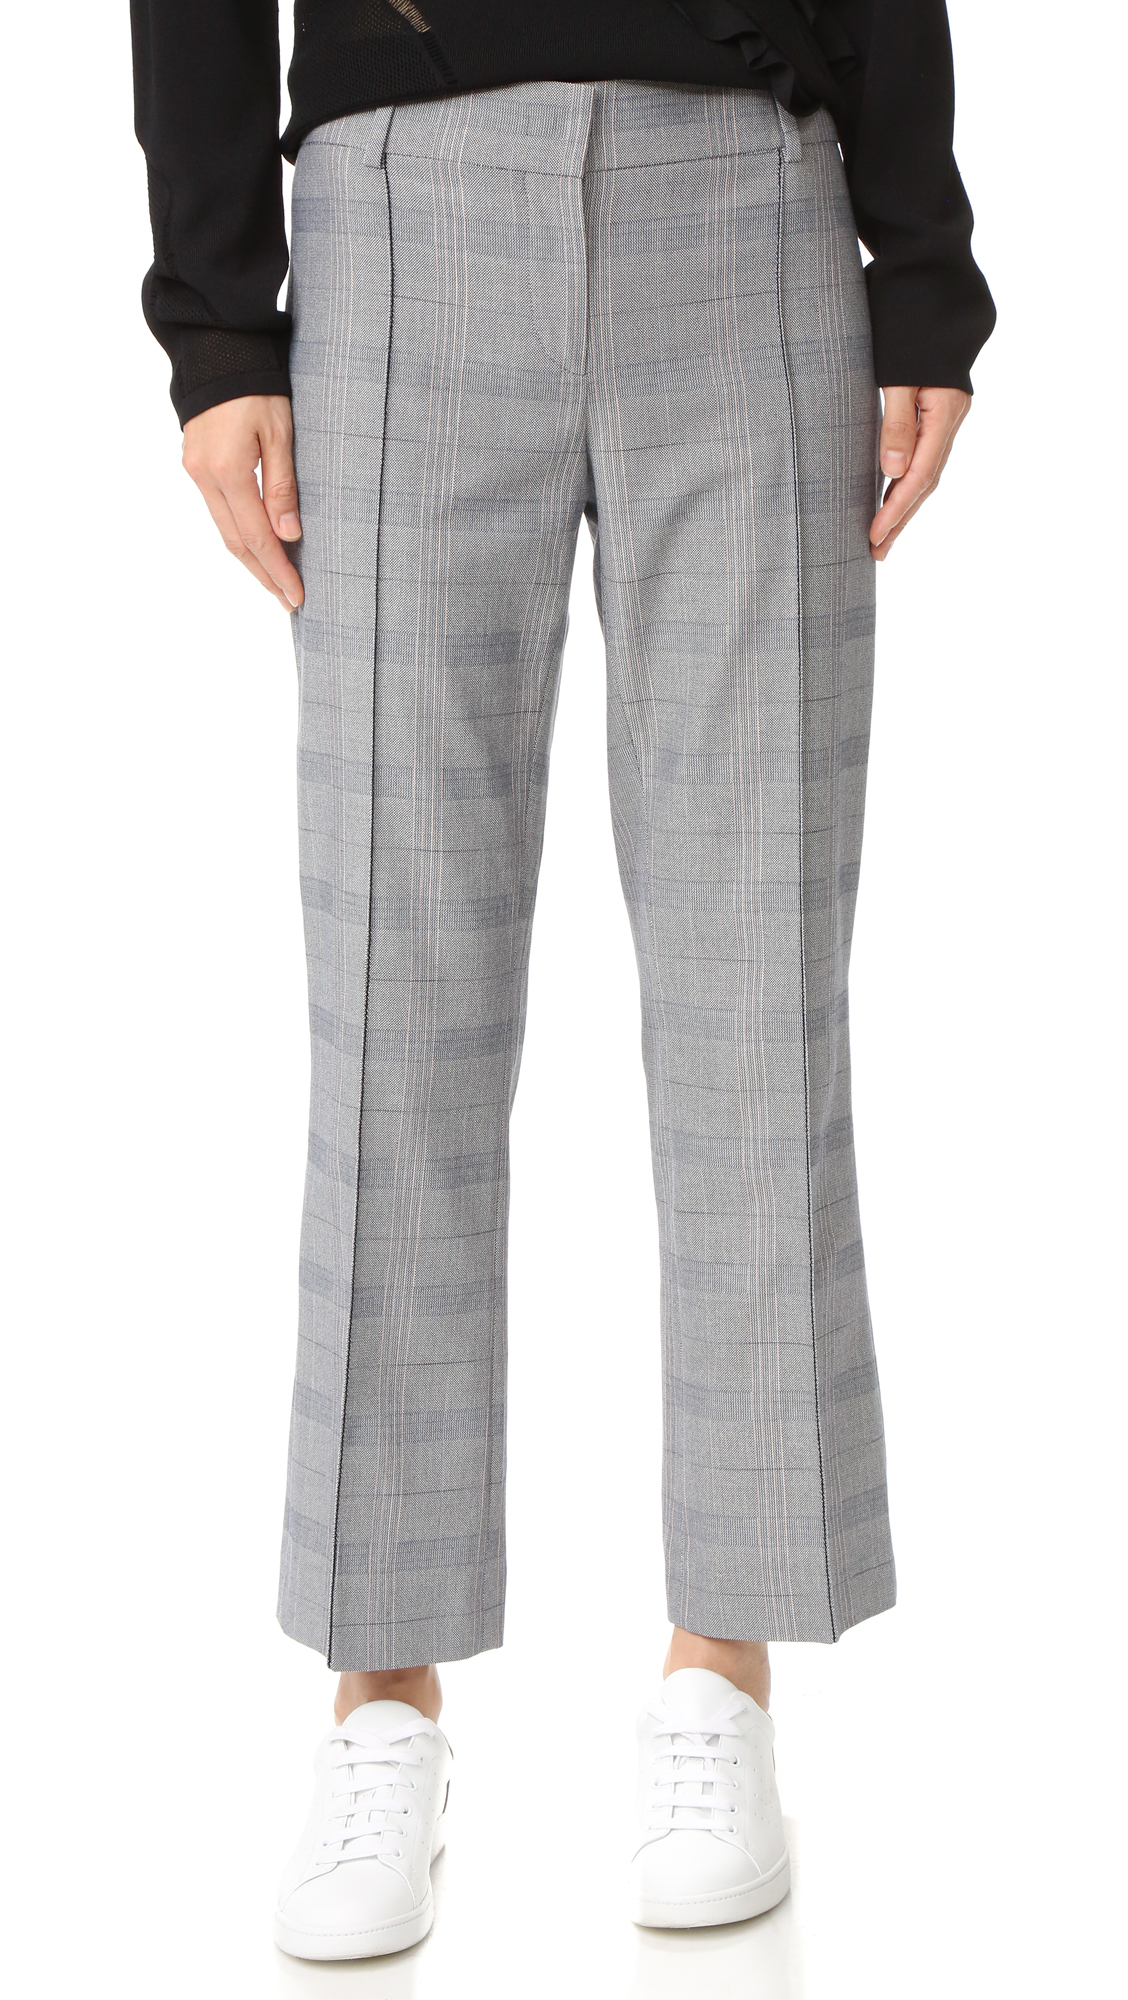 Vertical pintucks lengthen the look of these slim Cedric Charlier pants, rendered in menswear style plaid suiting. Welt back pocket. Hook and eye closure and zip fly. Fabric: Suiting. 100% cotton. Dry clean. Made in Italy. Measurements